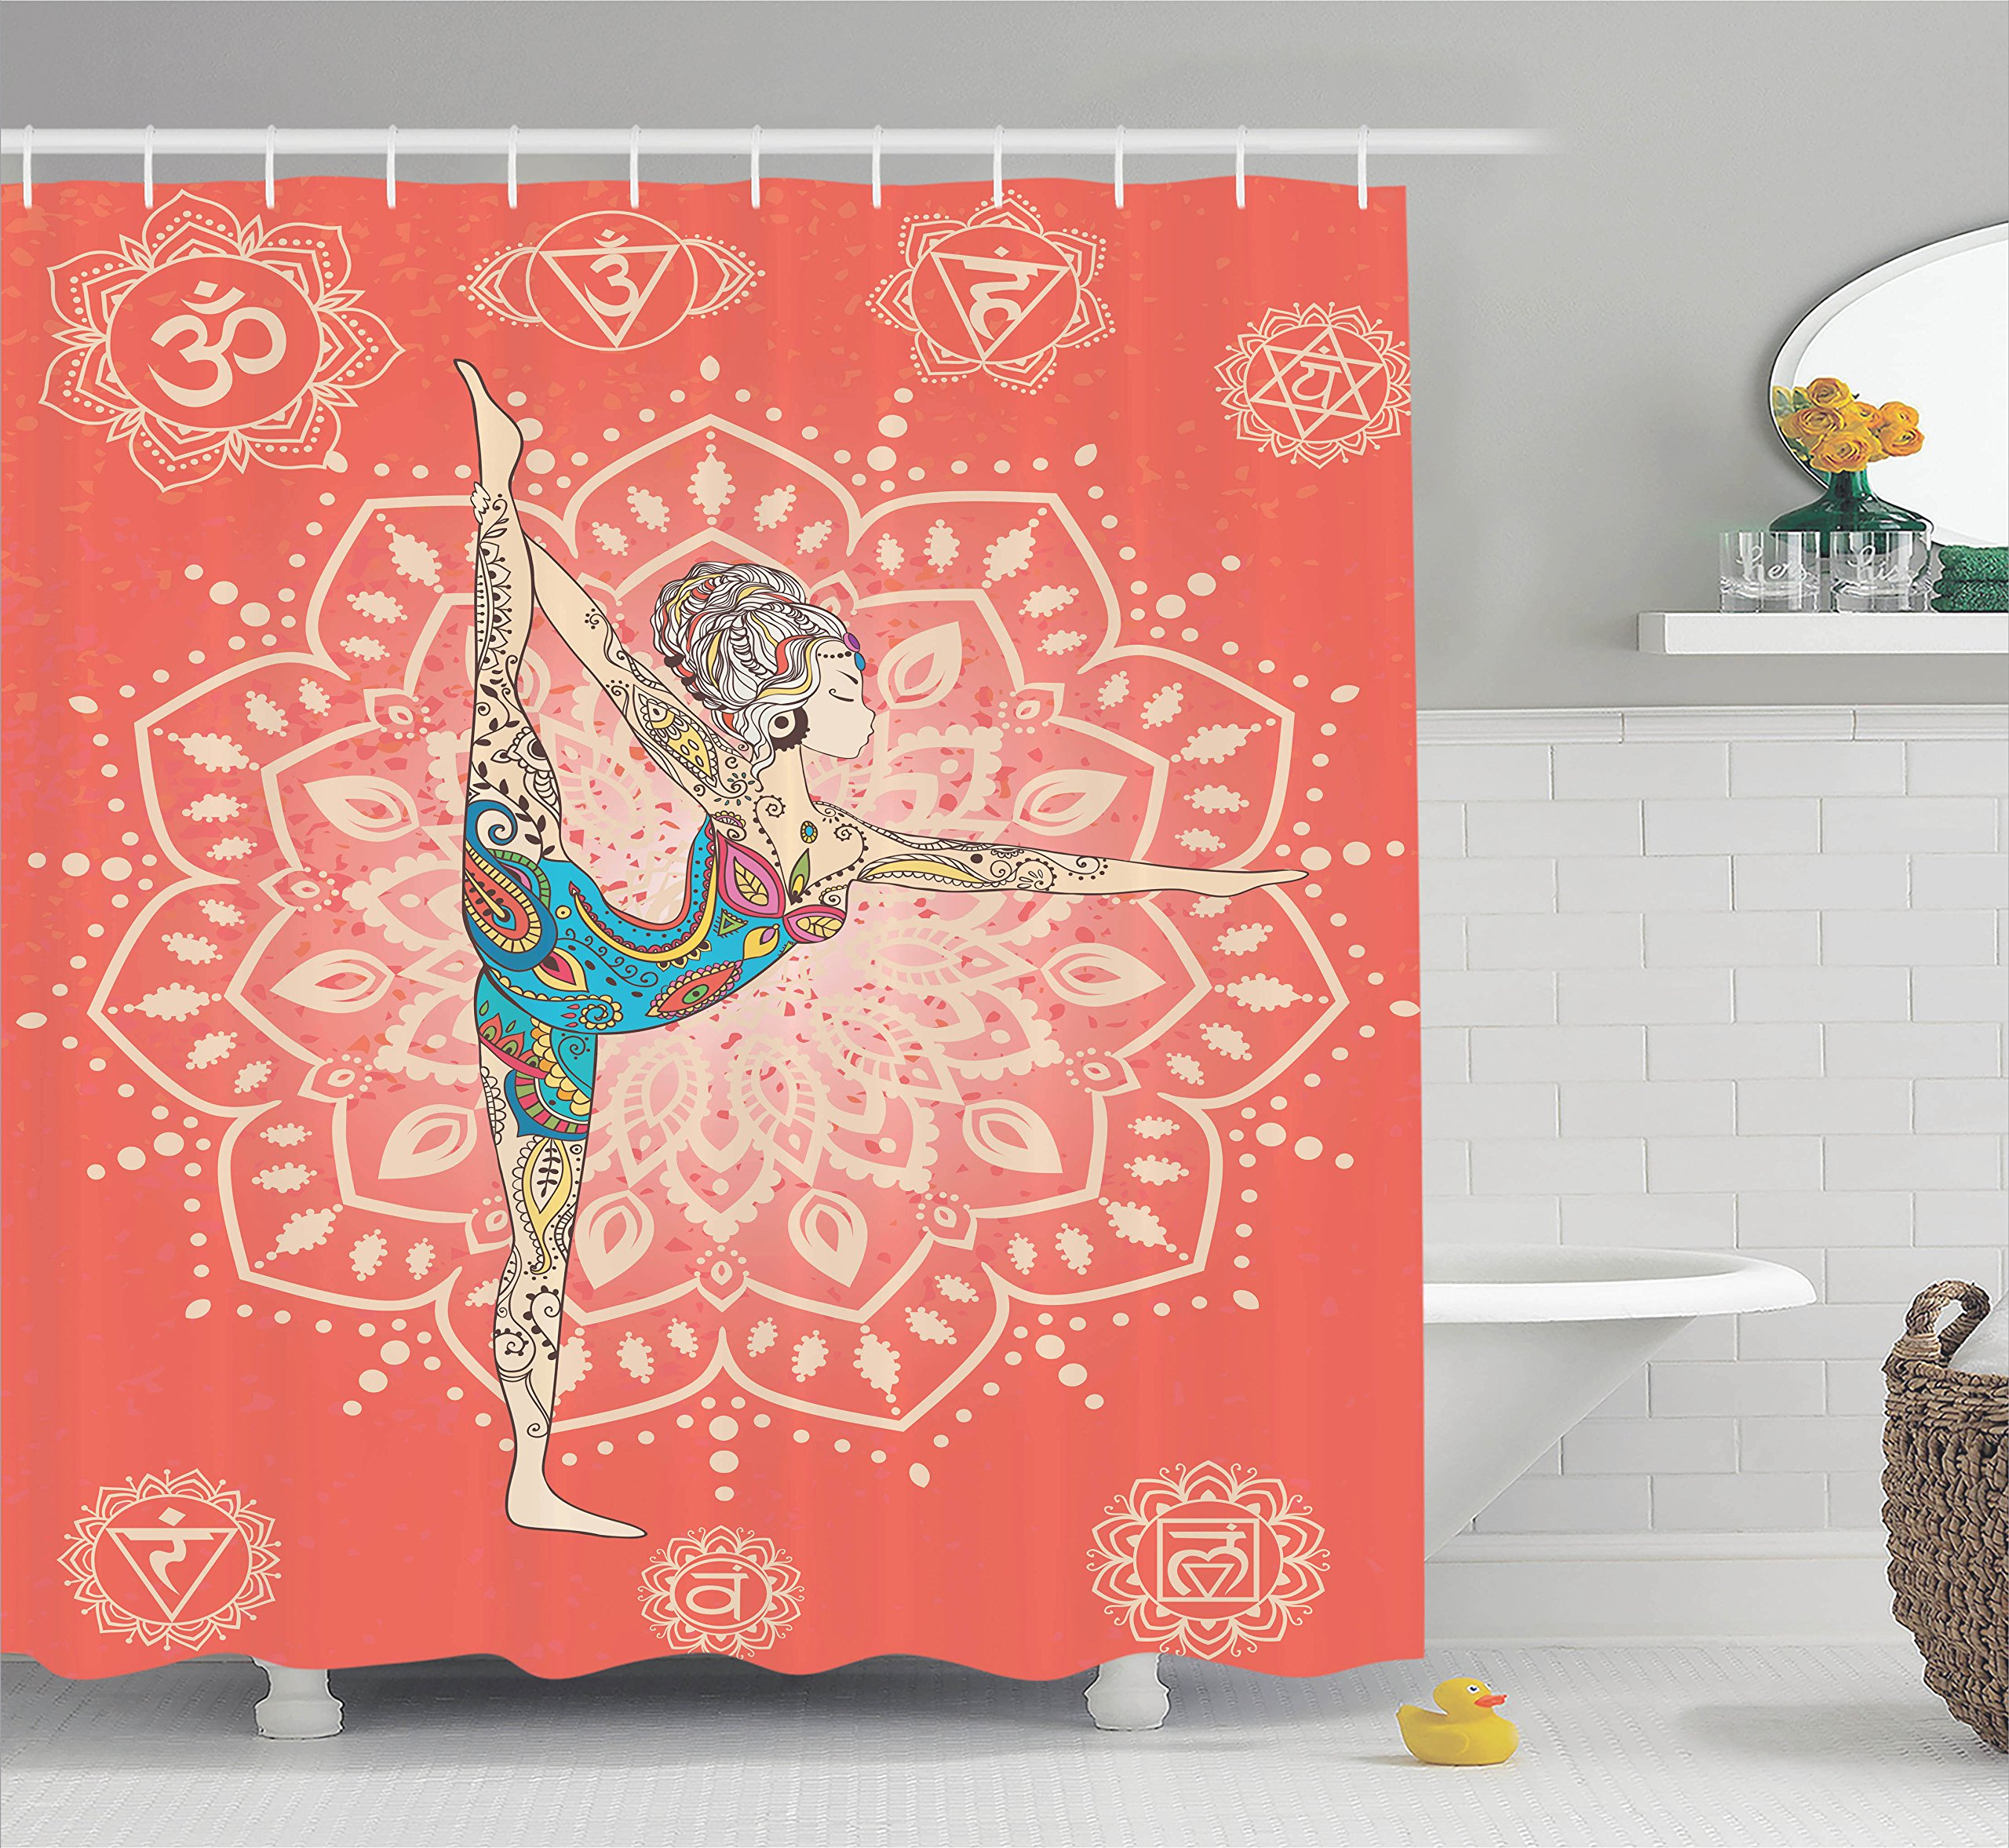 Ambesonne Yoga Decor Collection, Yoga Geometric Element Ornament Background Kaleidoscope Medallion Yoga India Picture, Polyester Fabric Bathroom Shower Curtain, 75 Inches Long, Coral Blue Pink